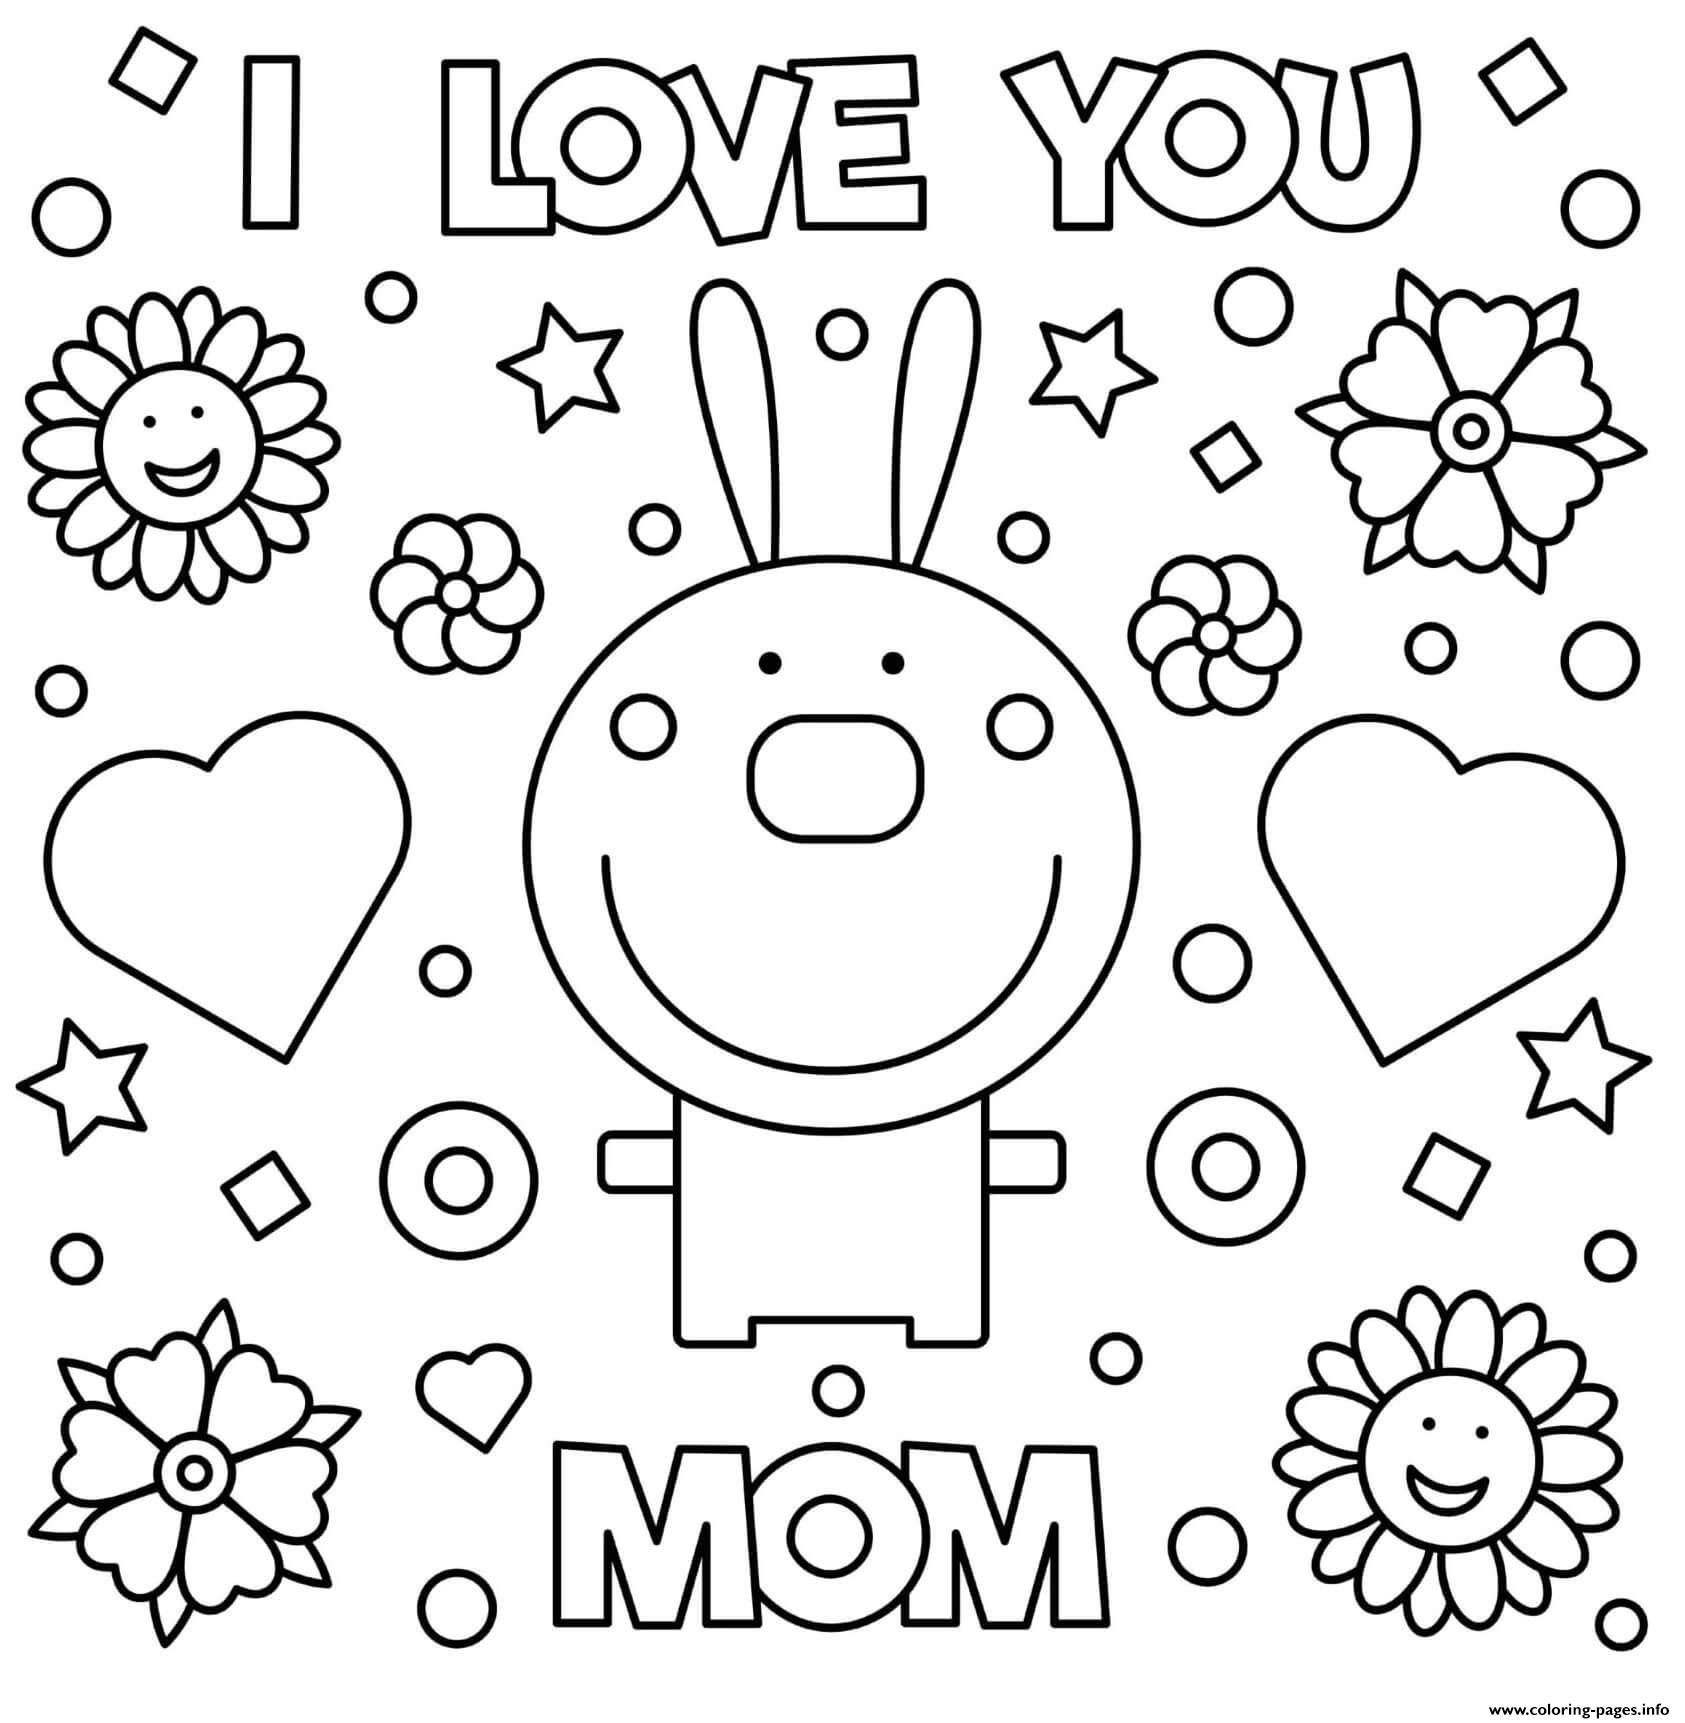 i love my mommy coloring pages i love you coloring pages love you mommy coloring pages my pages i love coloring mommy